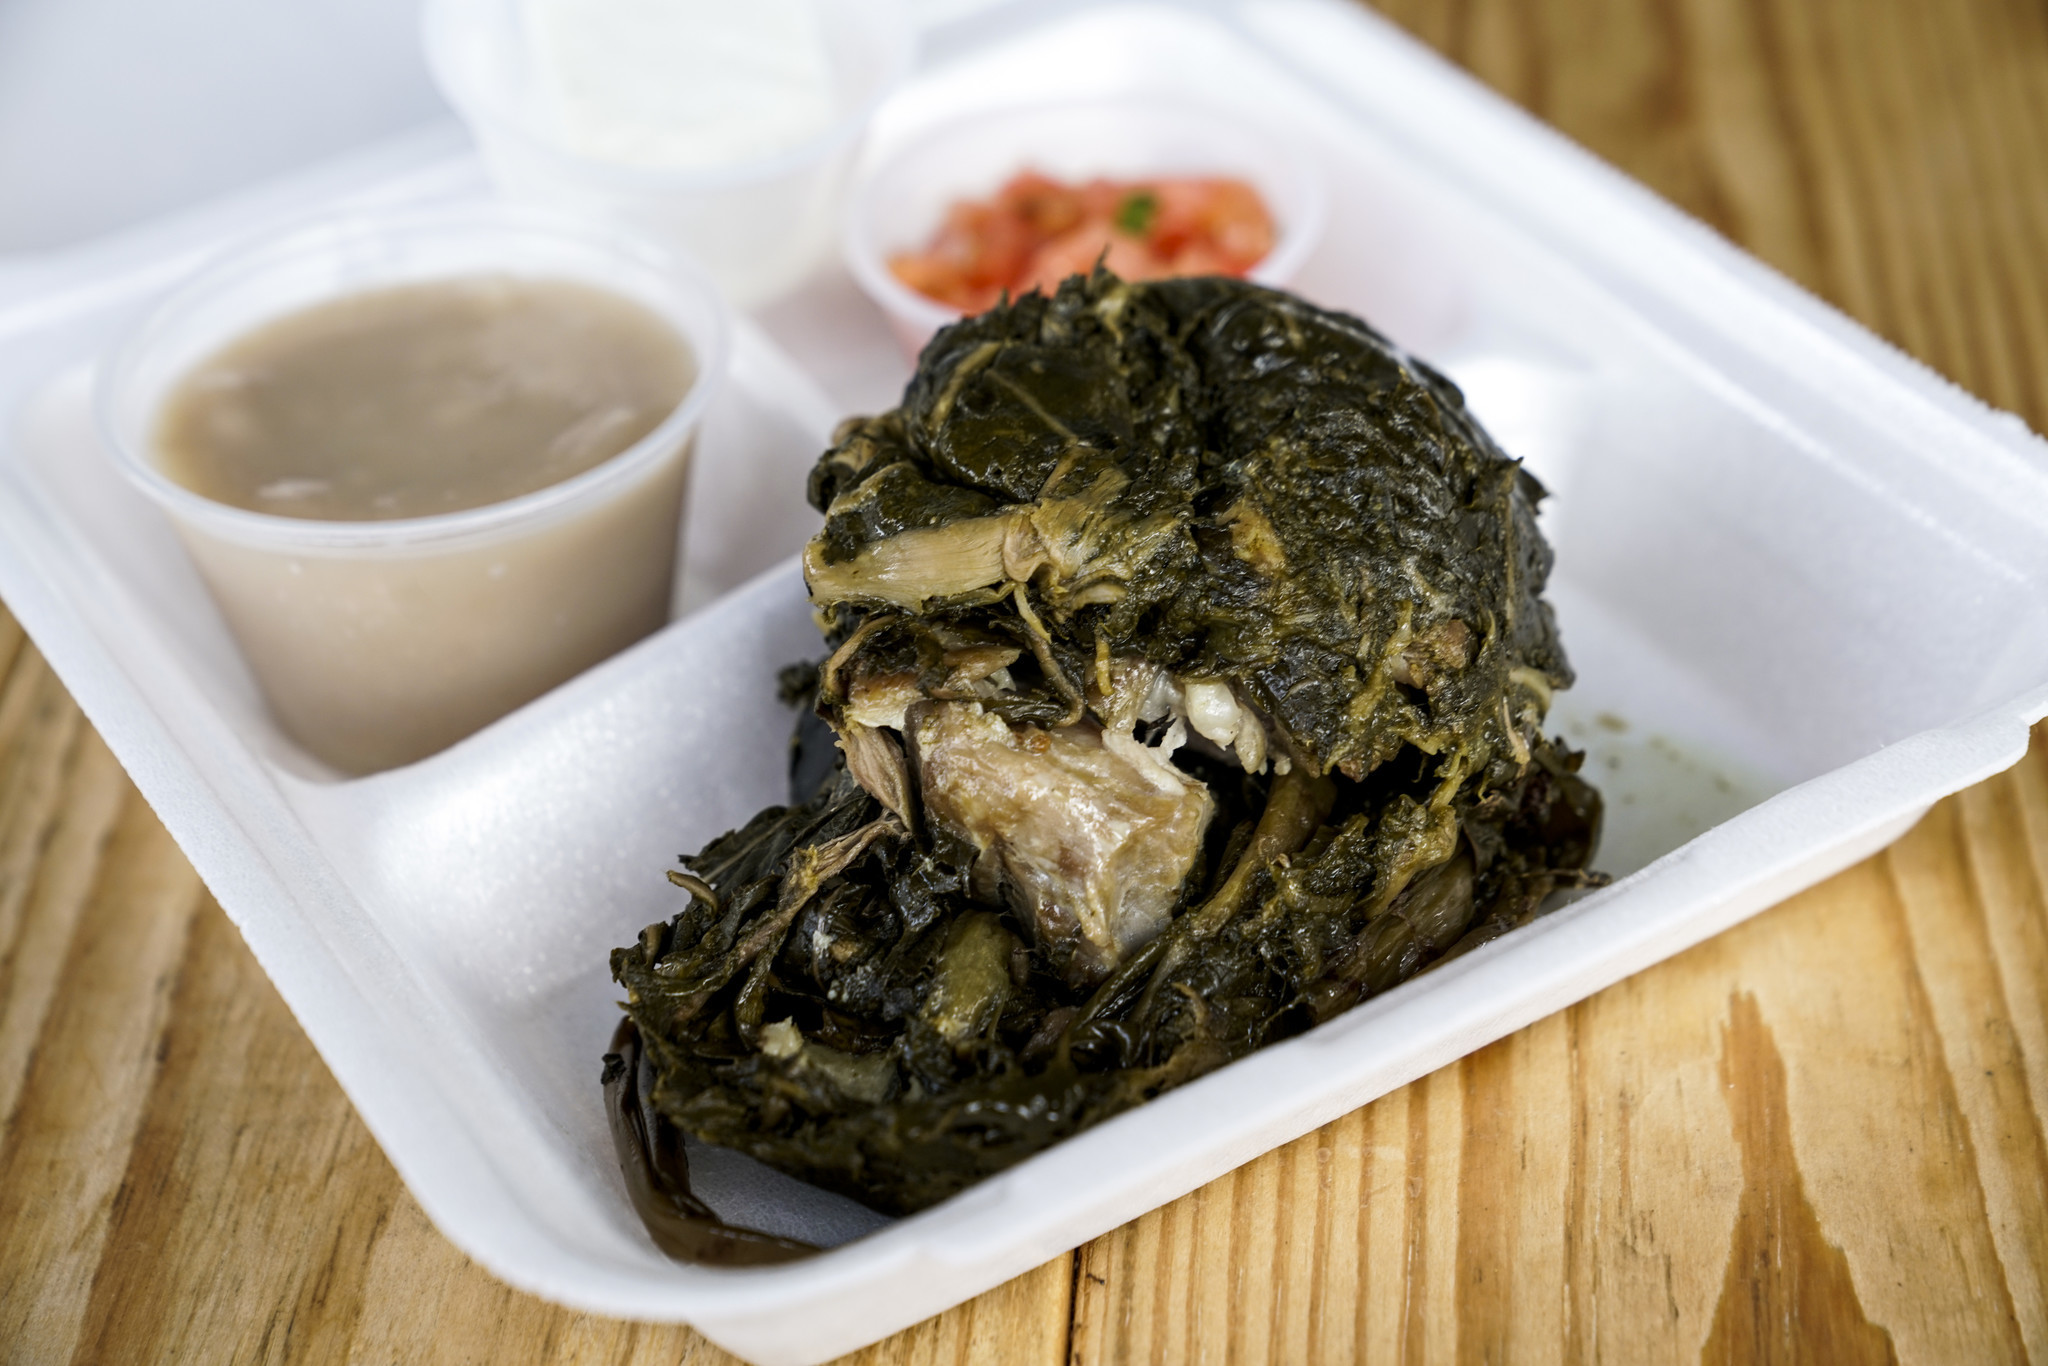 KANEOHE, HI - AUGUST 21: The Laulau combination plate, with Poi, Haupuia, and lomi salmon, photograp